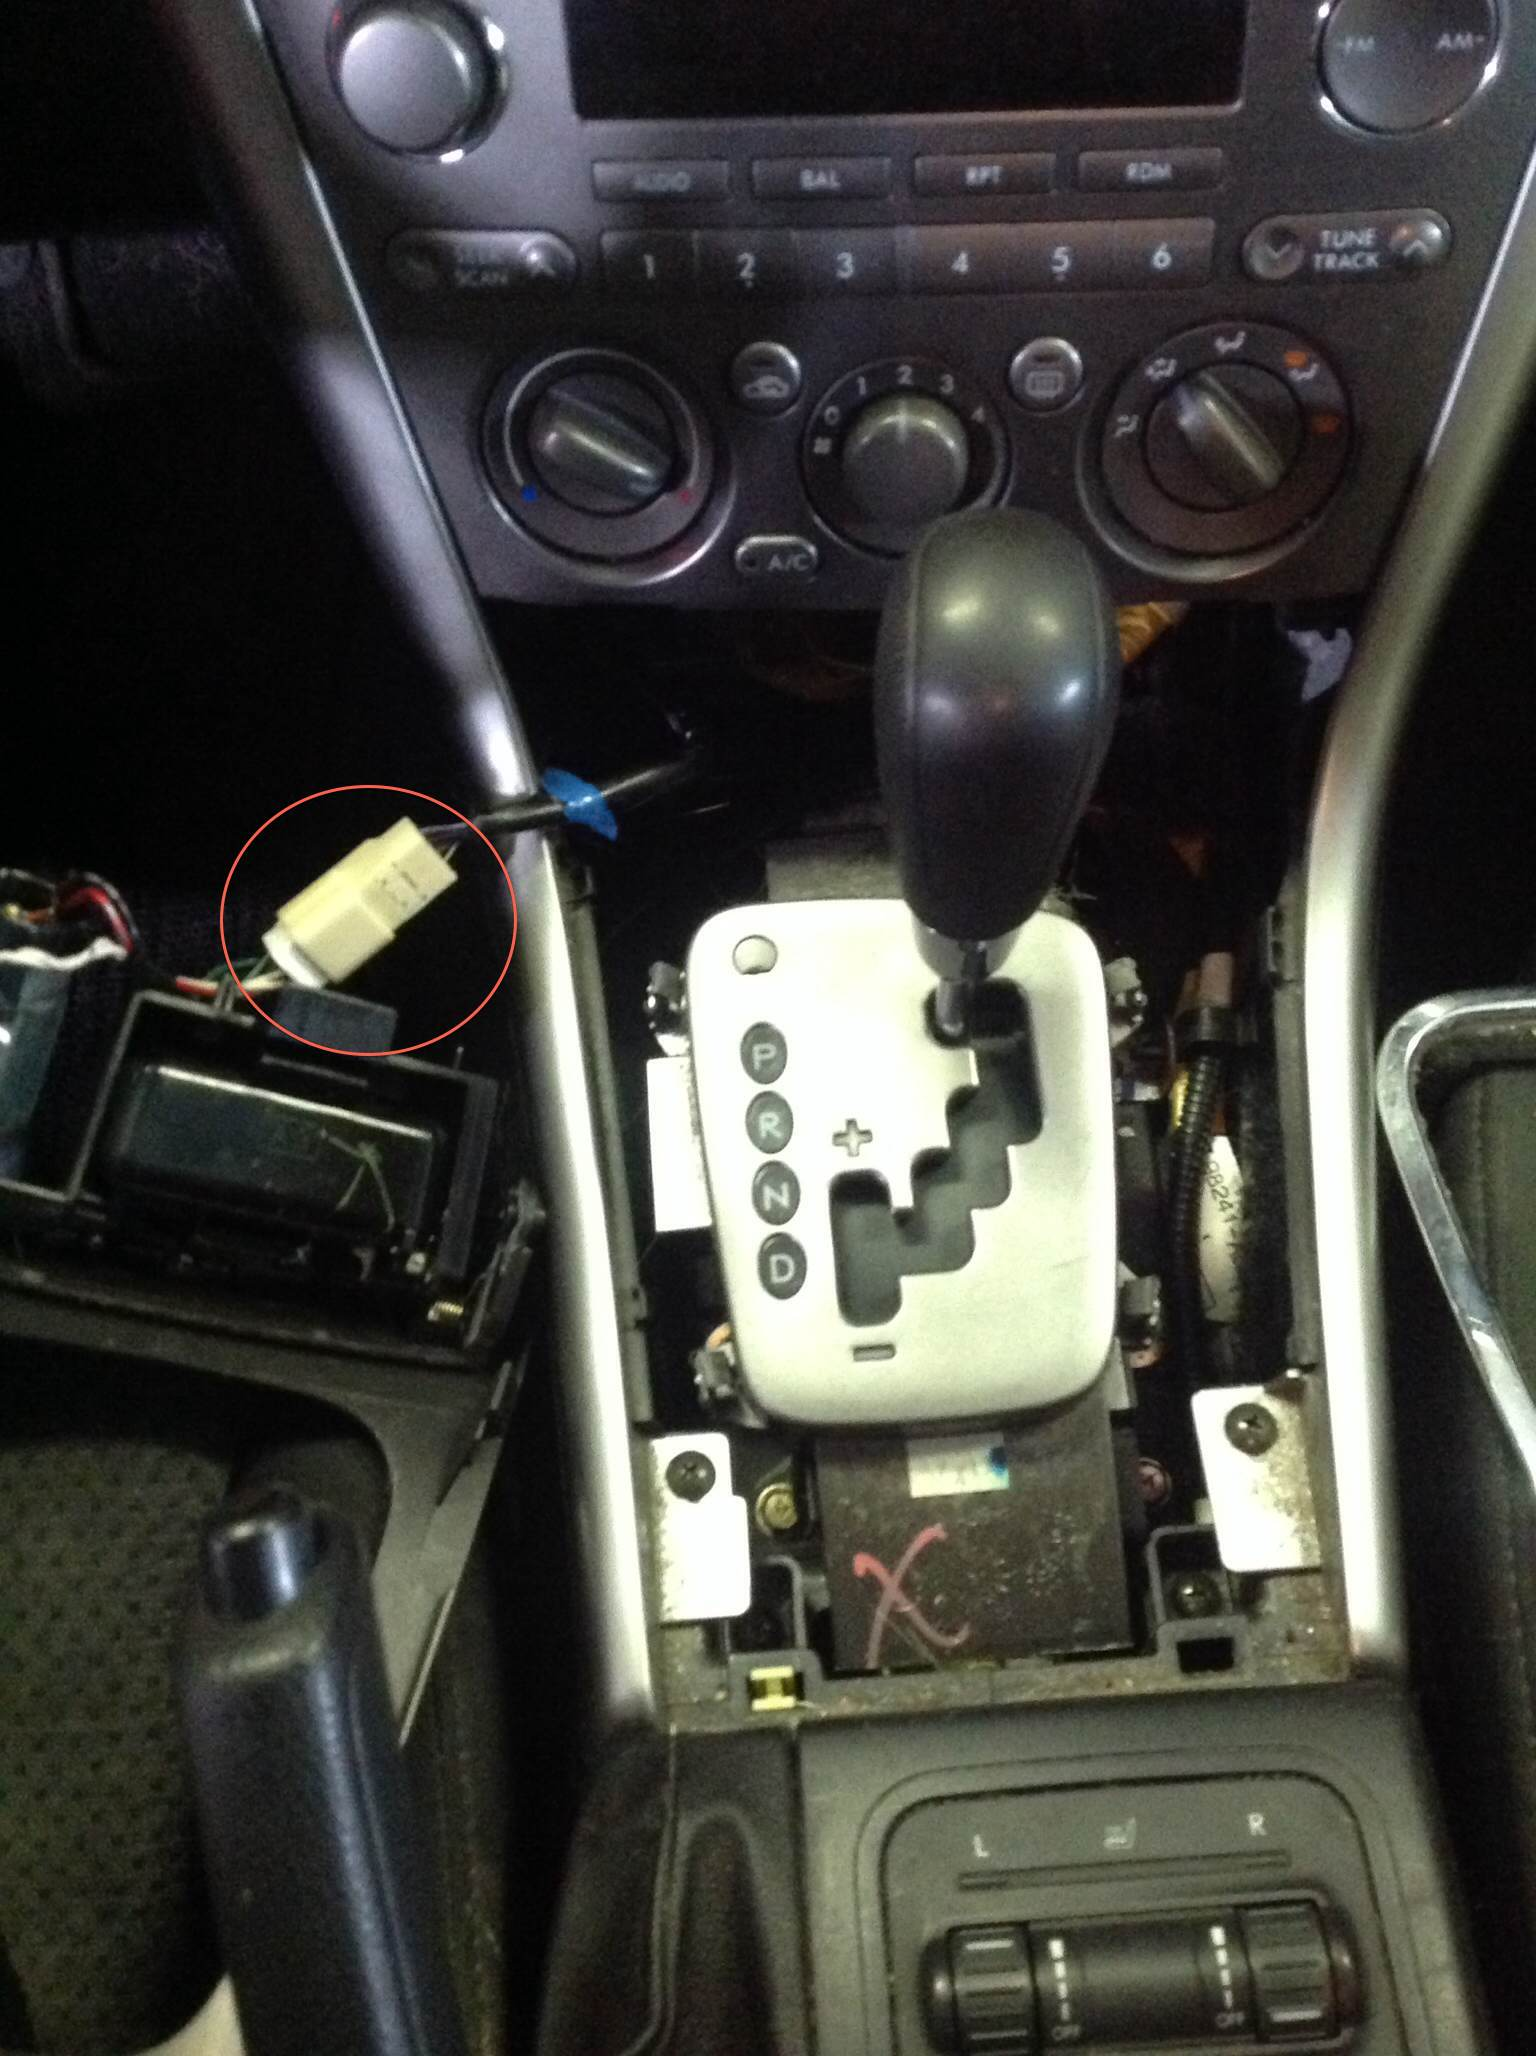 hight resolution of need to replace gear shifter light on 2005 outback photo 3 jpg